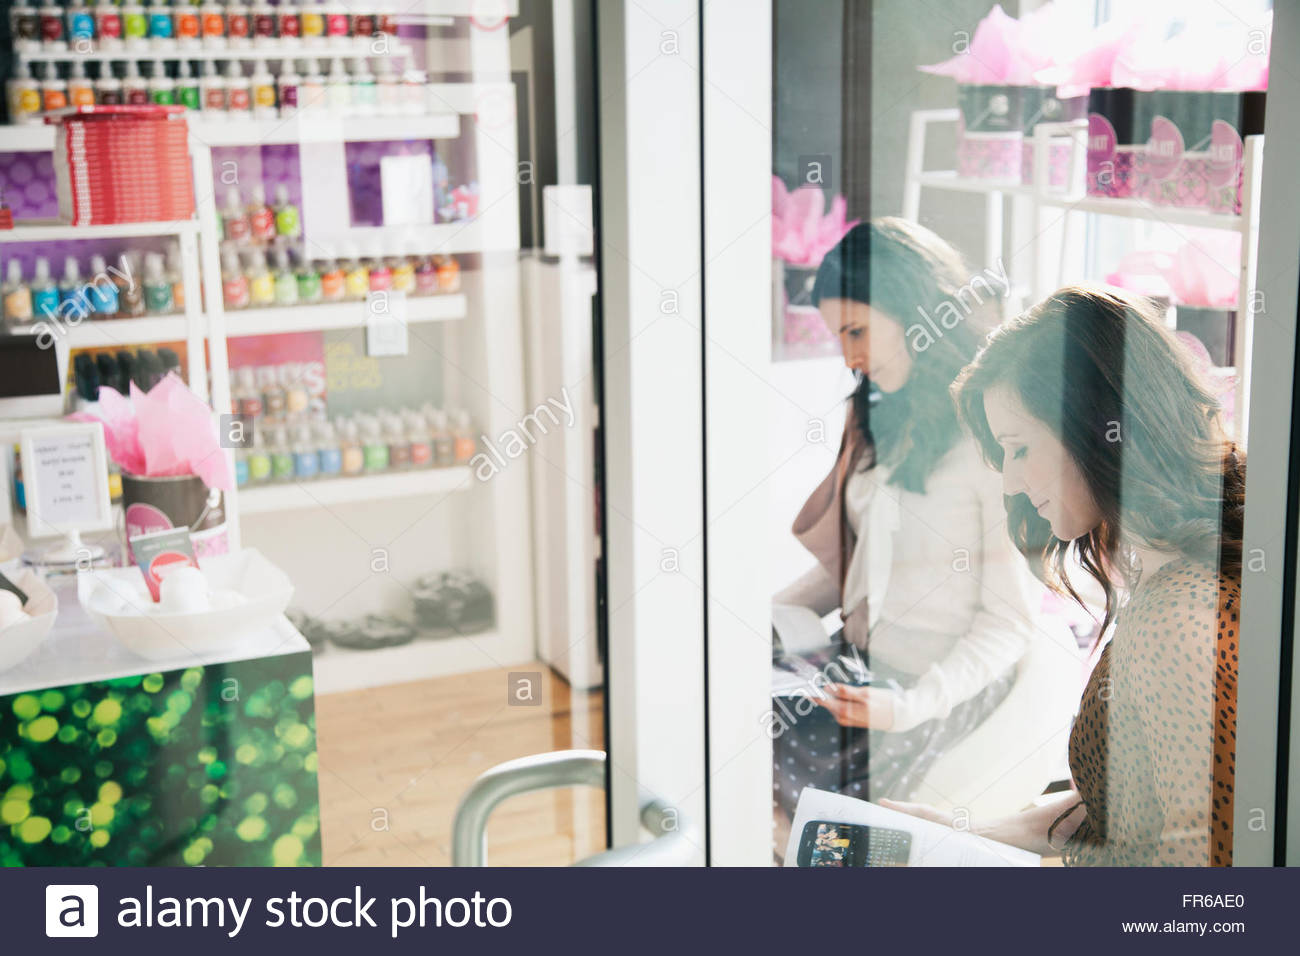 women waiting for salon appointment - Stock Image